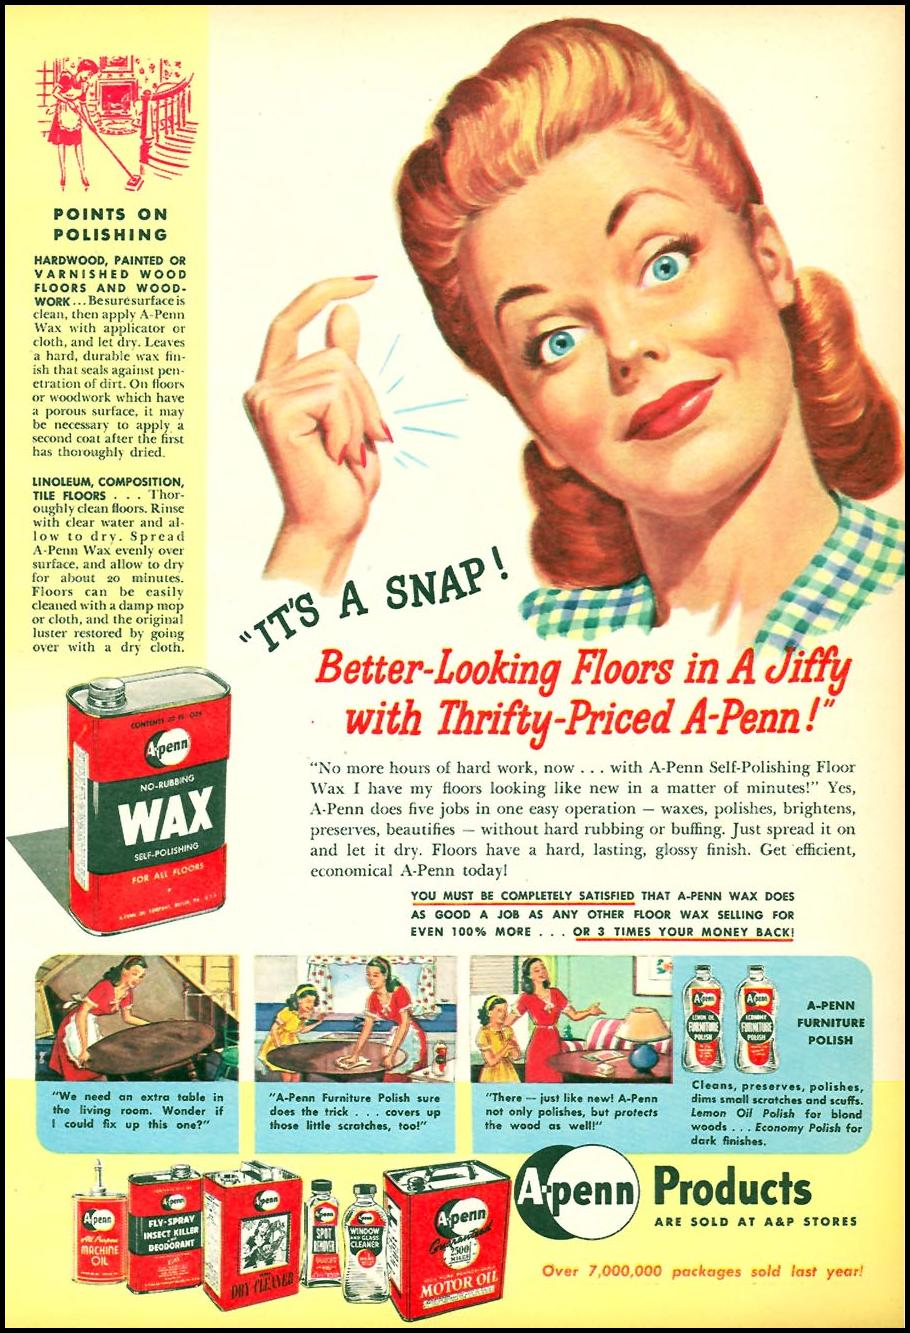 A-PENN PRODUCTS WOMAN'S DAY 05/01/1946